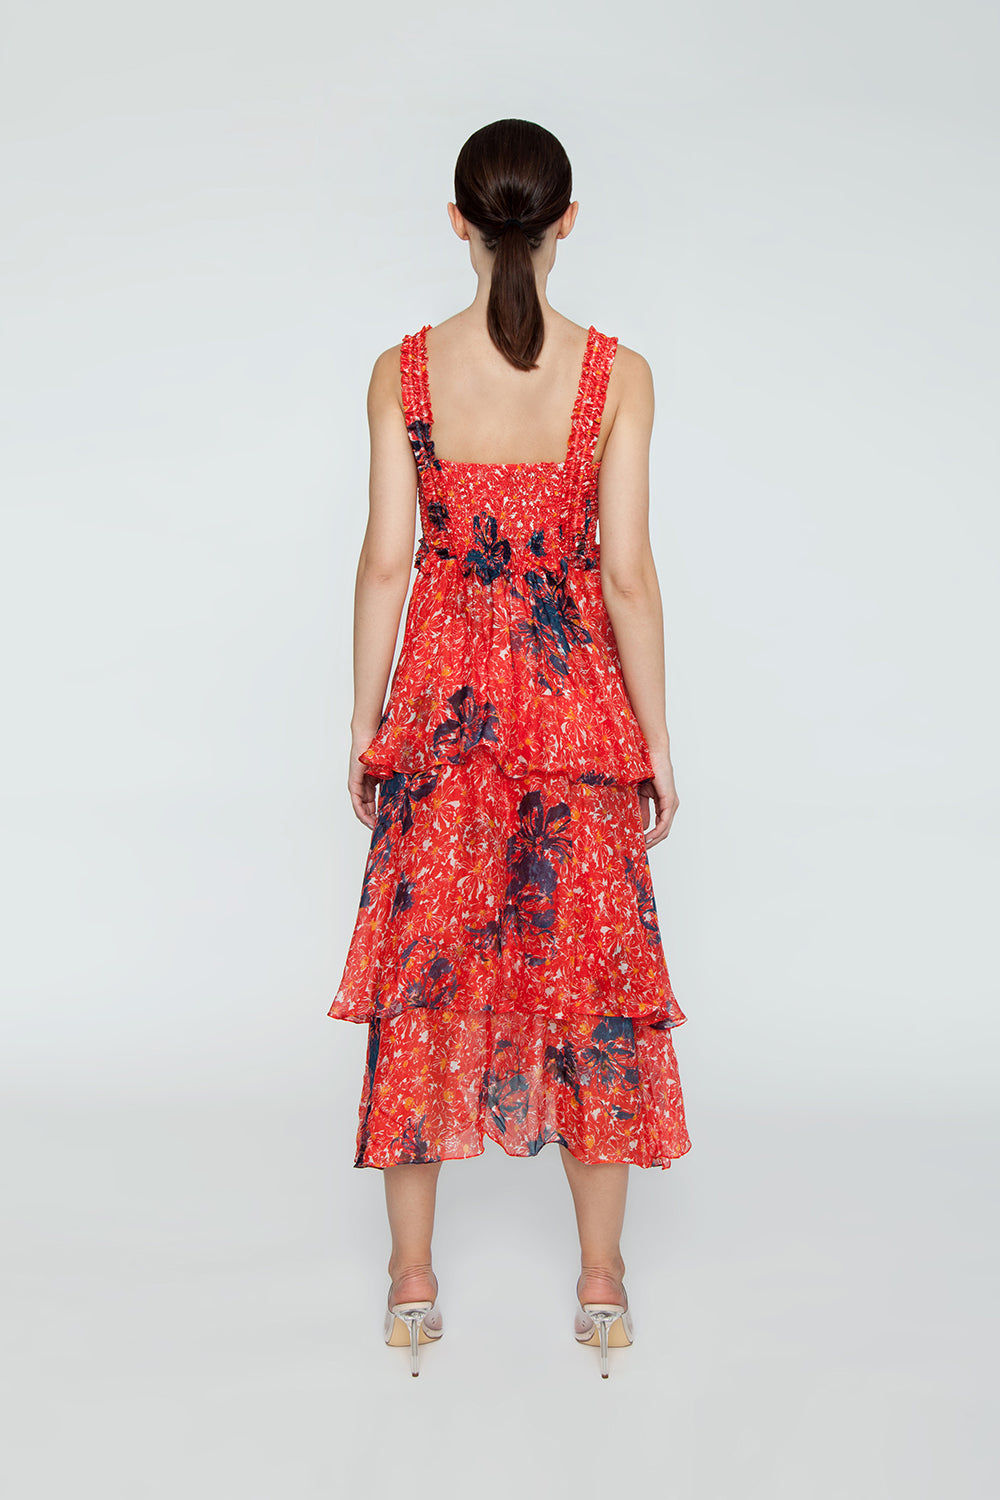 CLUBE BOSSA Zelza Ruffle Midi Dress - Fleur Red Print Dress | Fleur Red Print| CLUBE BOSSA Zelza Ruffle Midi Dress - Fleur Red Print. Features:  Square neckline Ruffle details Elastic waistband Back View